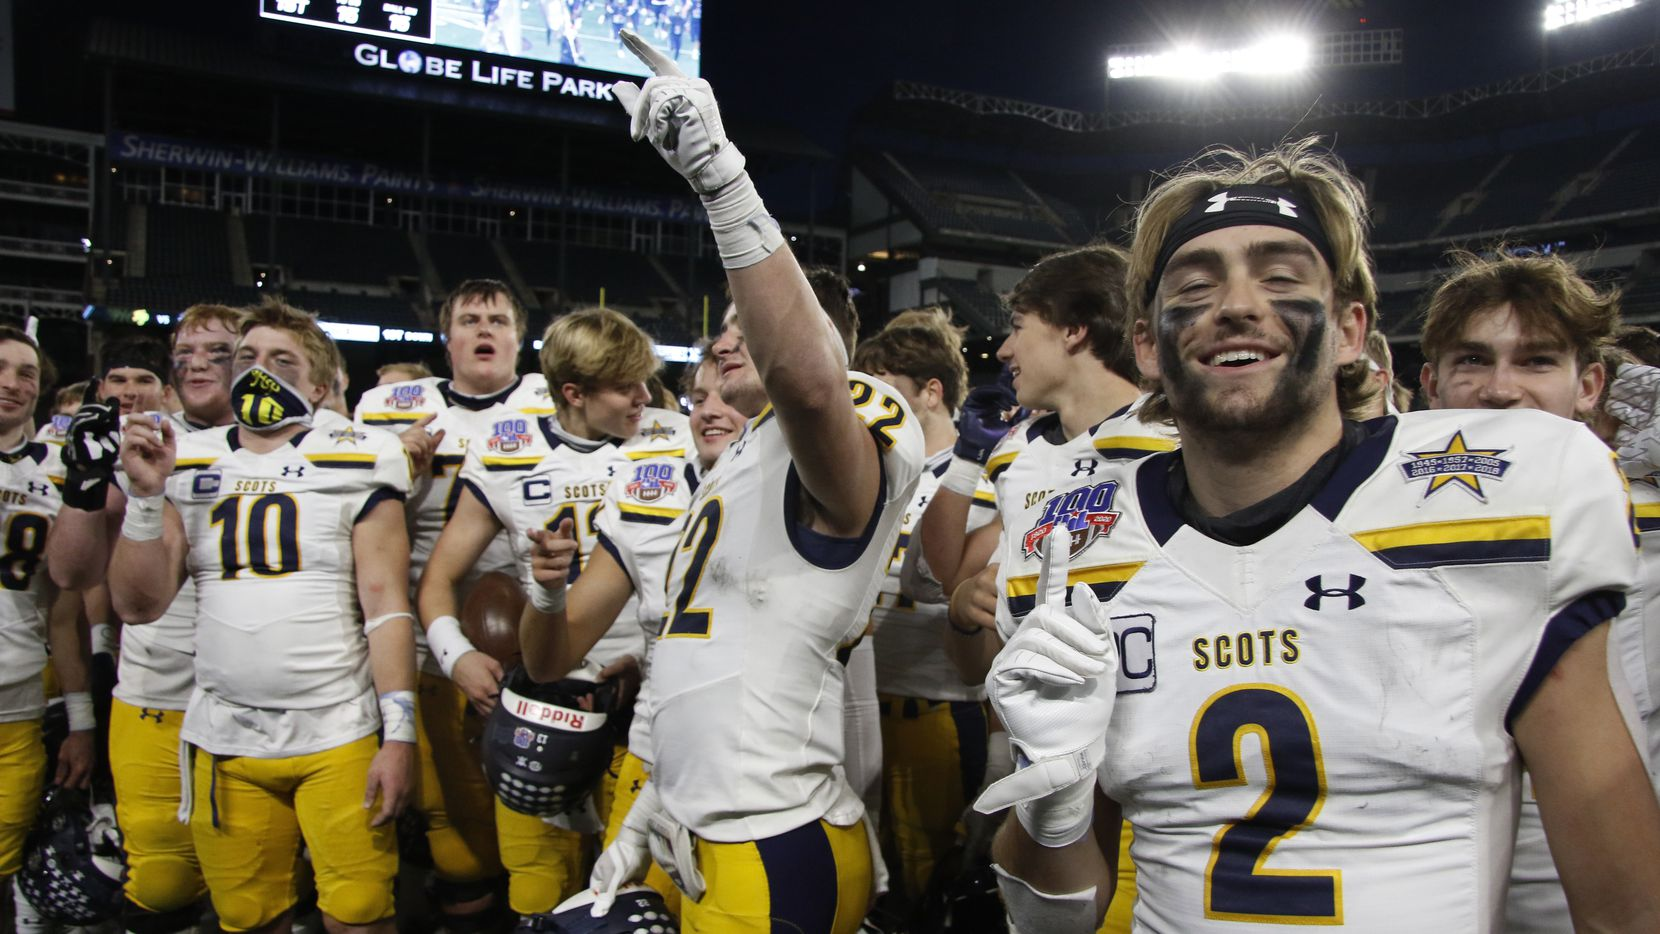 Highland Park receiver Will Pettijohn (2) sports a gesture following the team's 30-20 victory over Frisco Lone Star to advance.The two teams played their Class 5A Division l Region ll semifinal football playoff game held at Globe Life Park in Arlington on December 24, 2020.